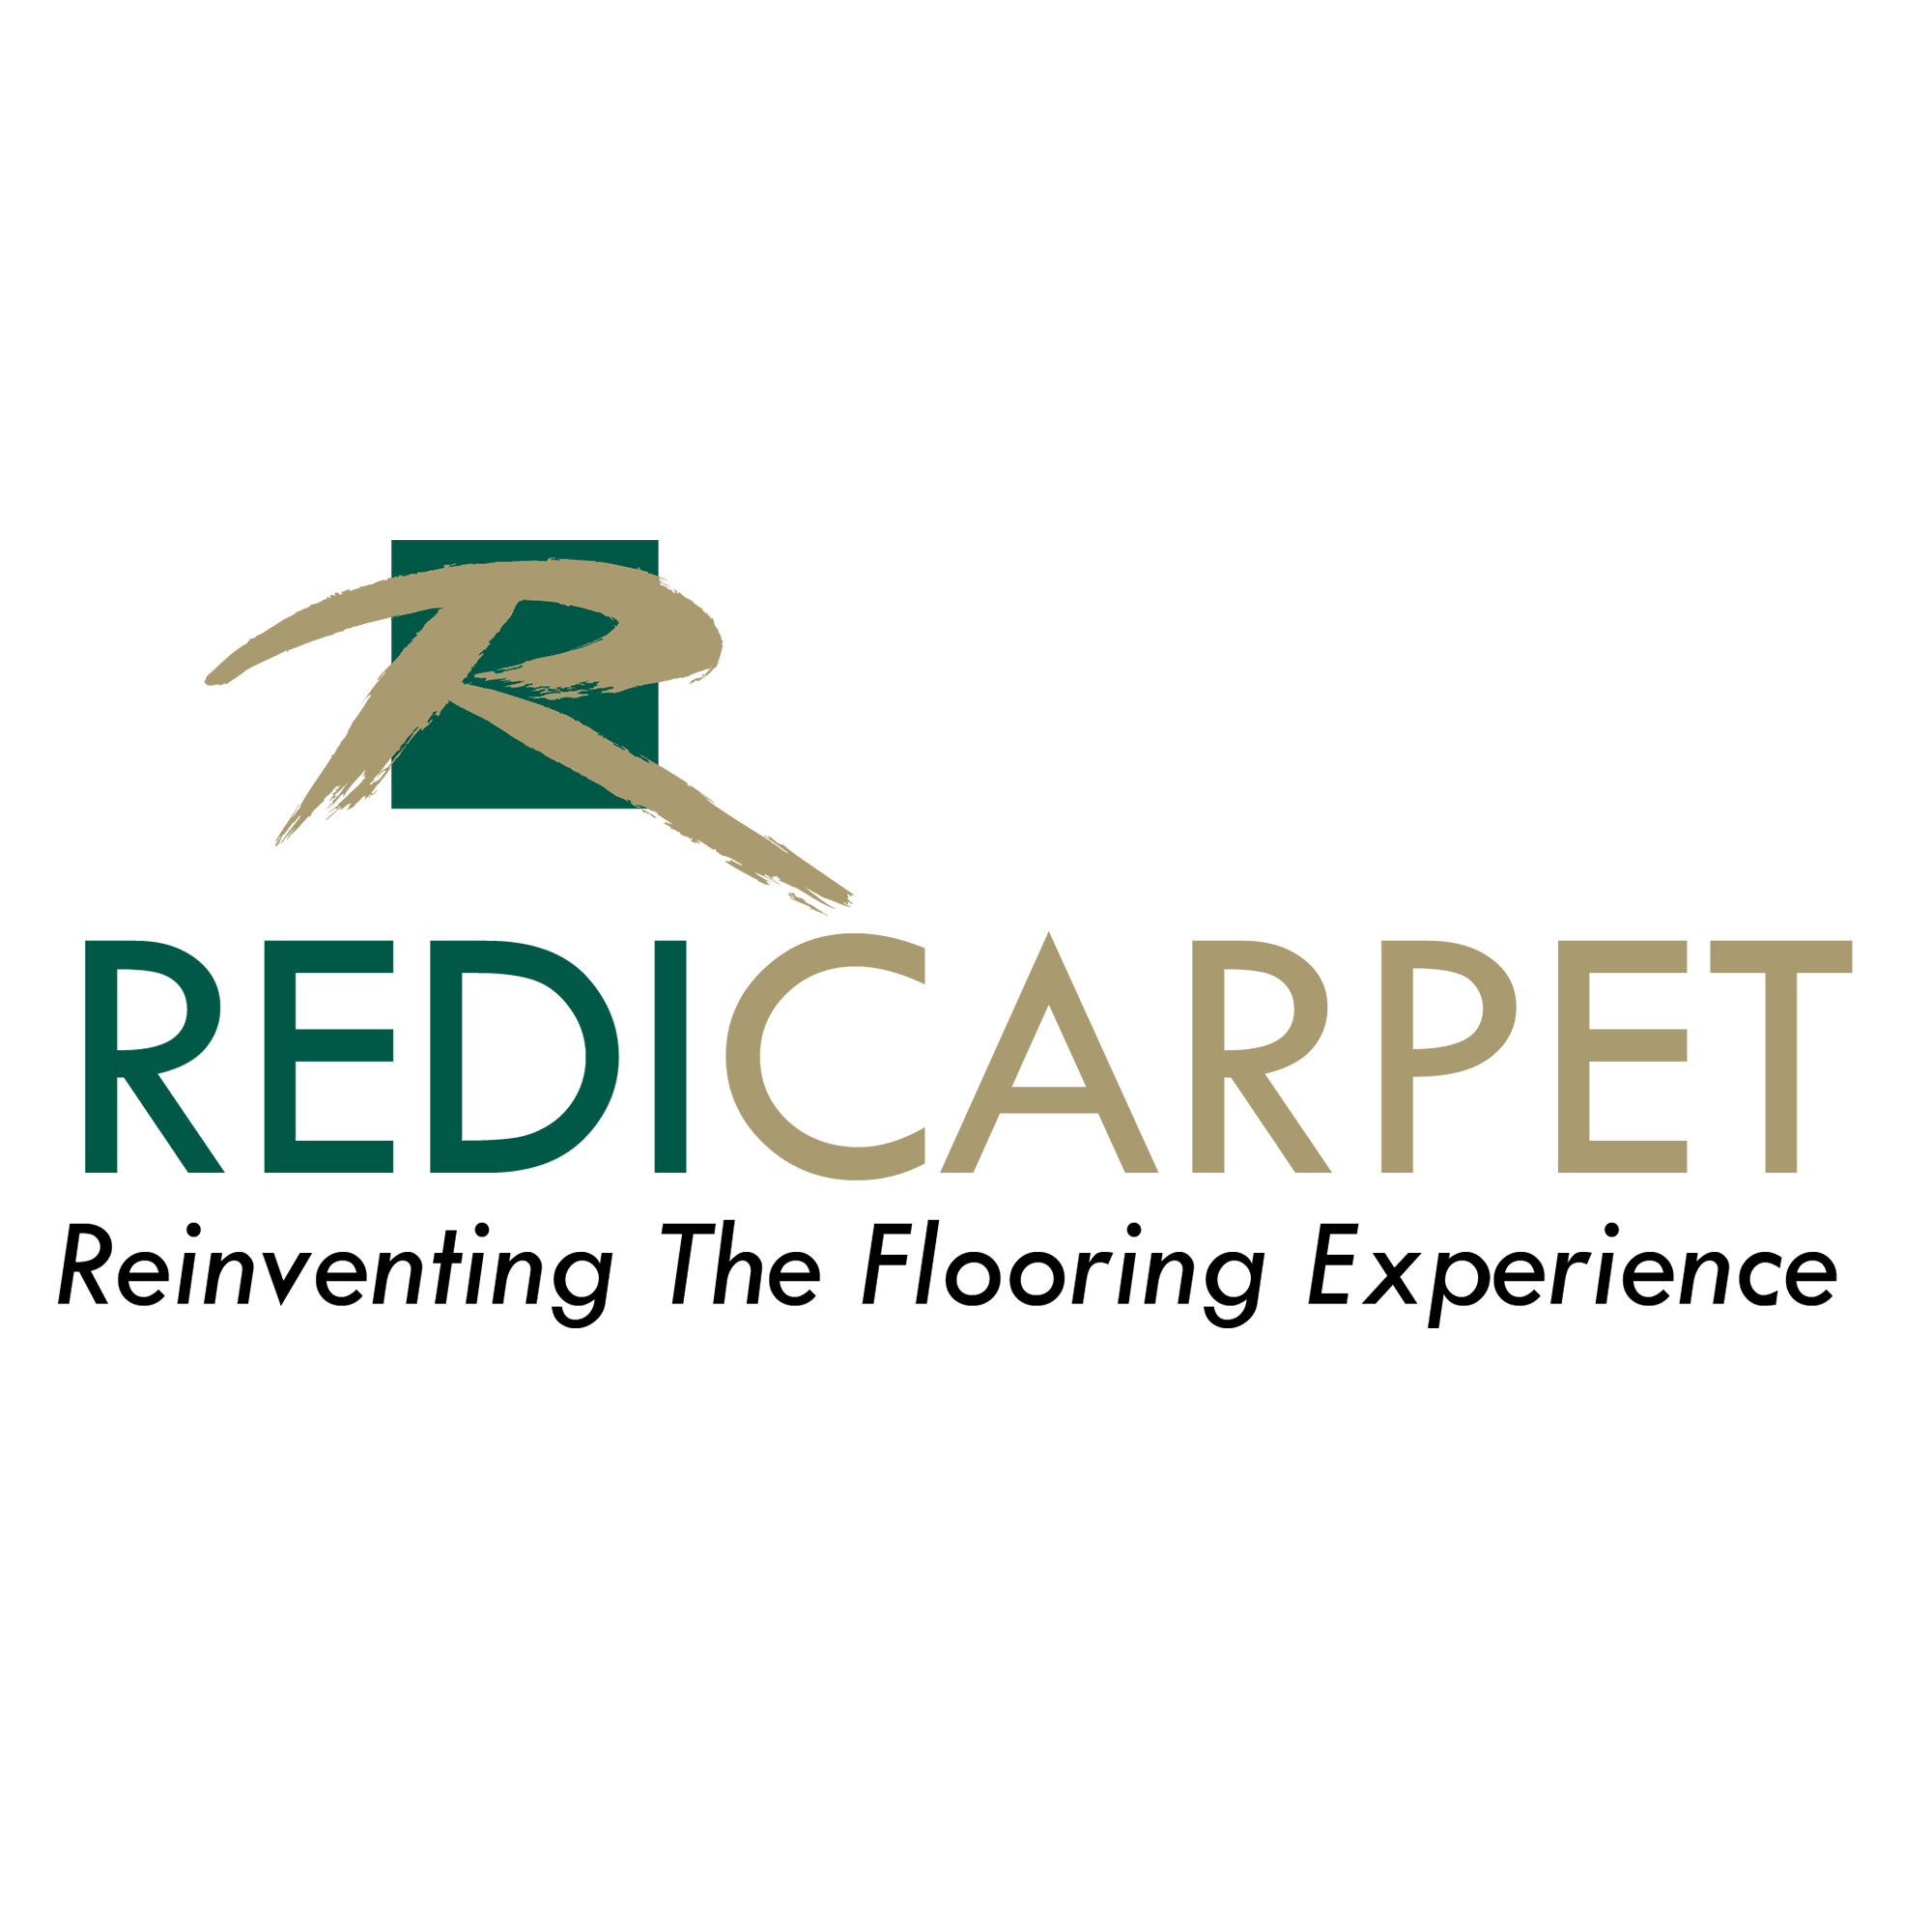 Redicarpet Logo and vendor Think Construction Services